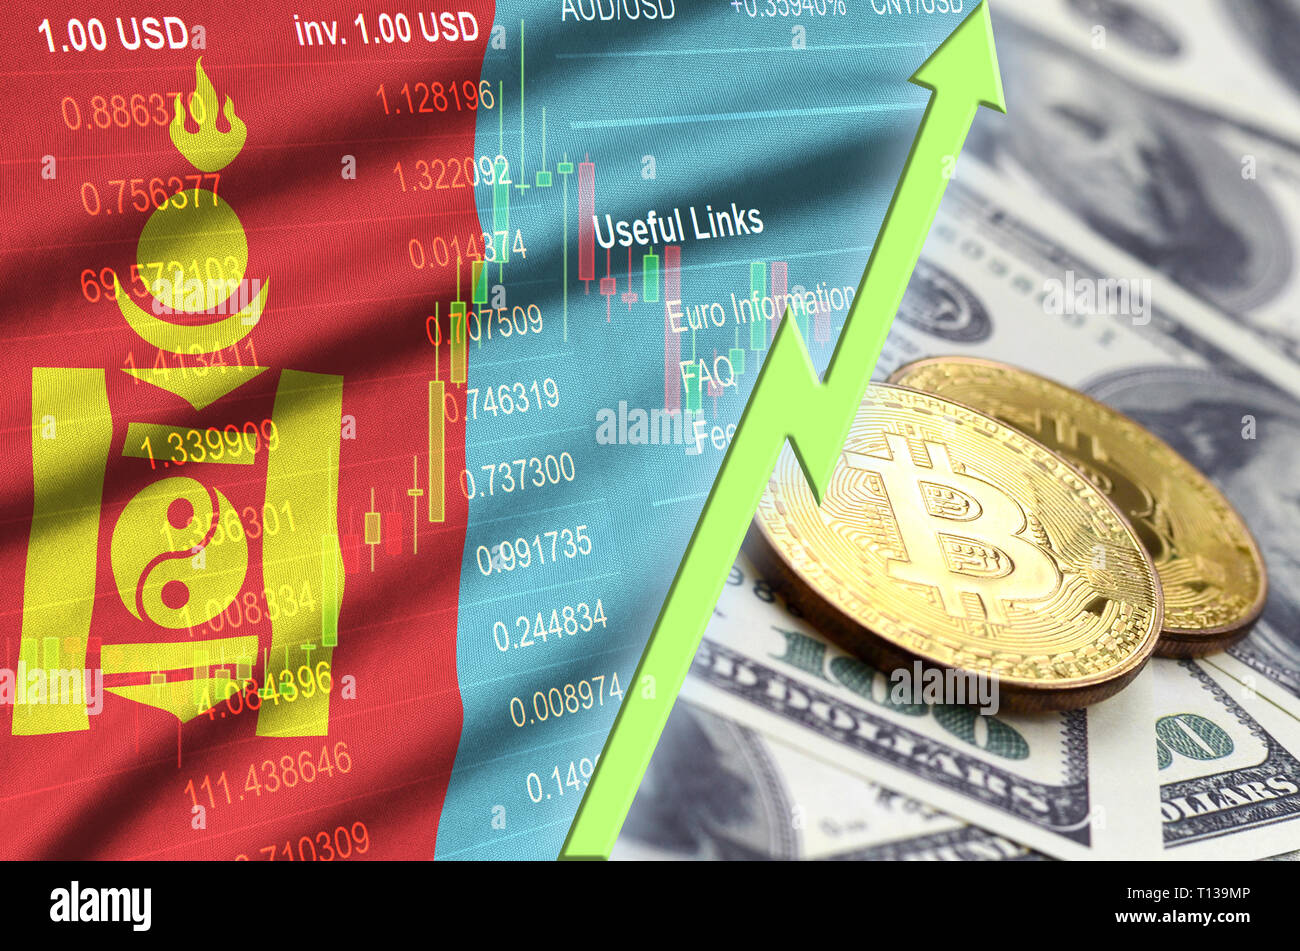 Mongolia flag and cryptocurrency growing trend with two bitcoins on dollar bills. Concept of raising Bitcoin in price against the dollar - Stock Image